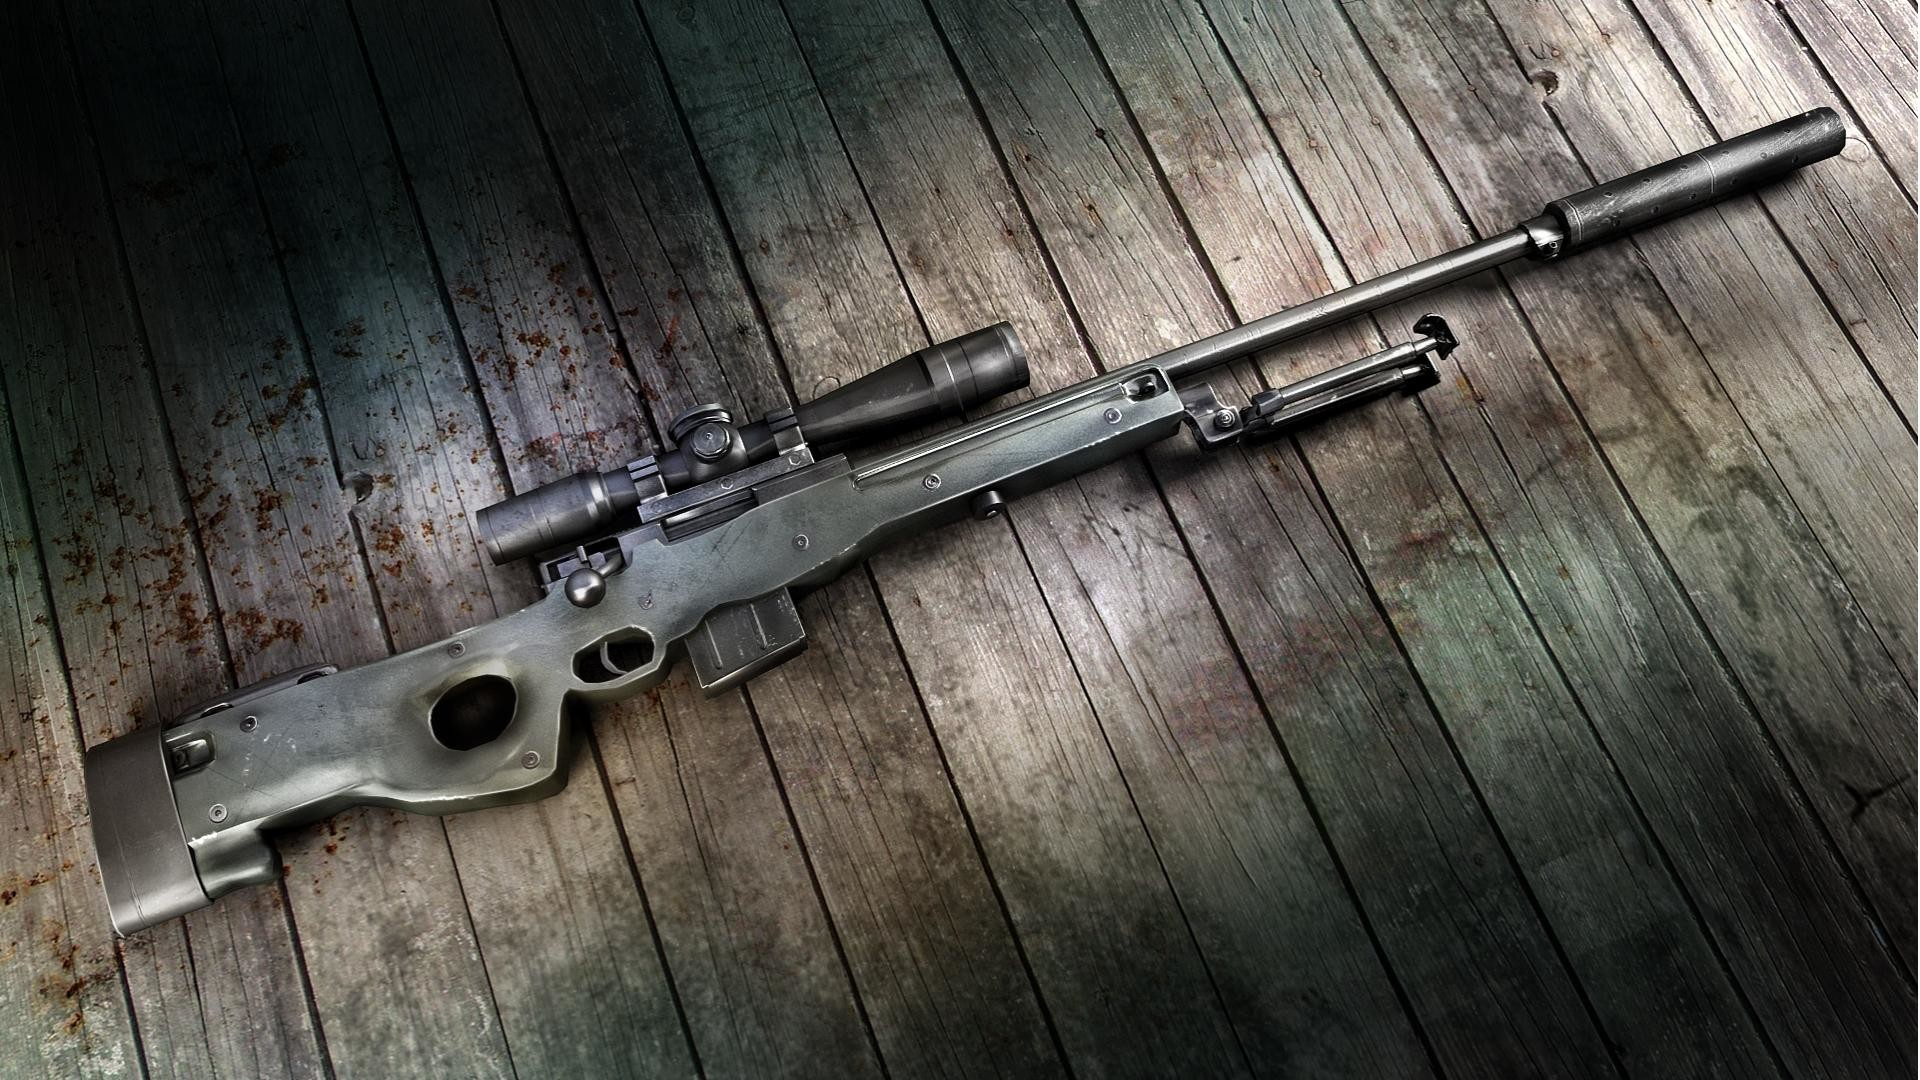 Pubg Guns Wallpapers: Sniper Rifle Wallpaper HD (79+ Images